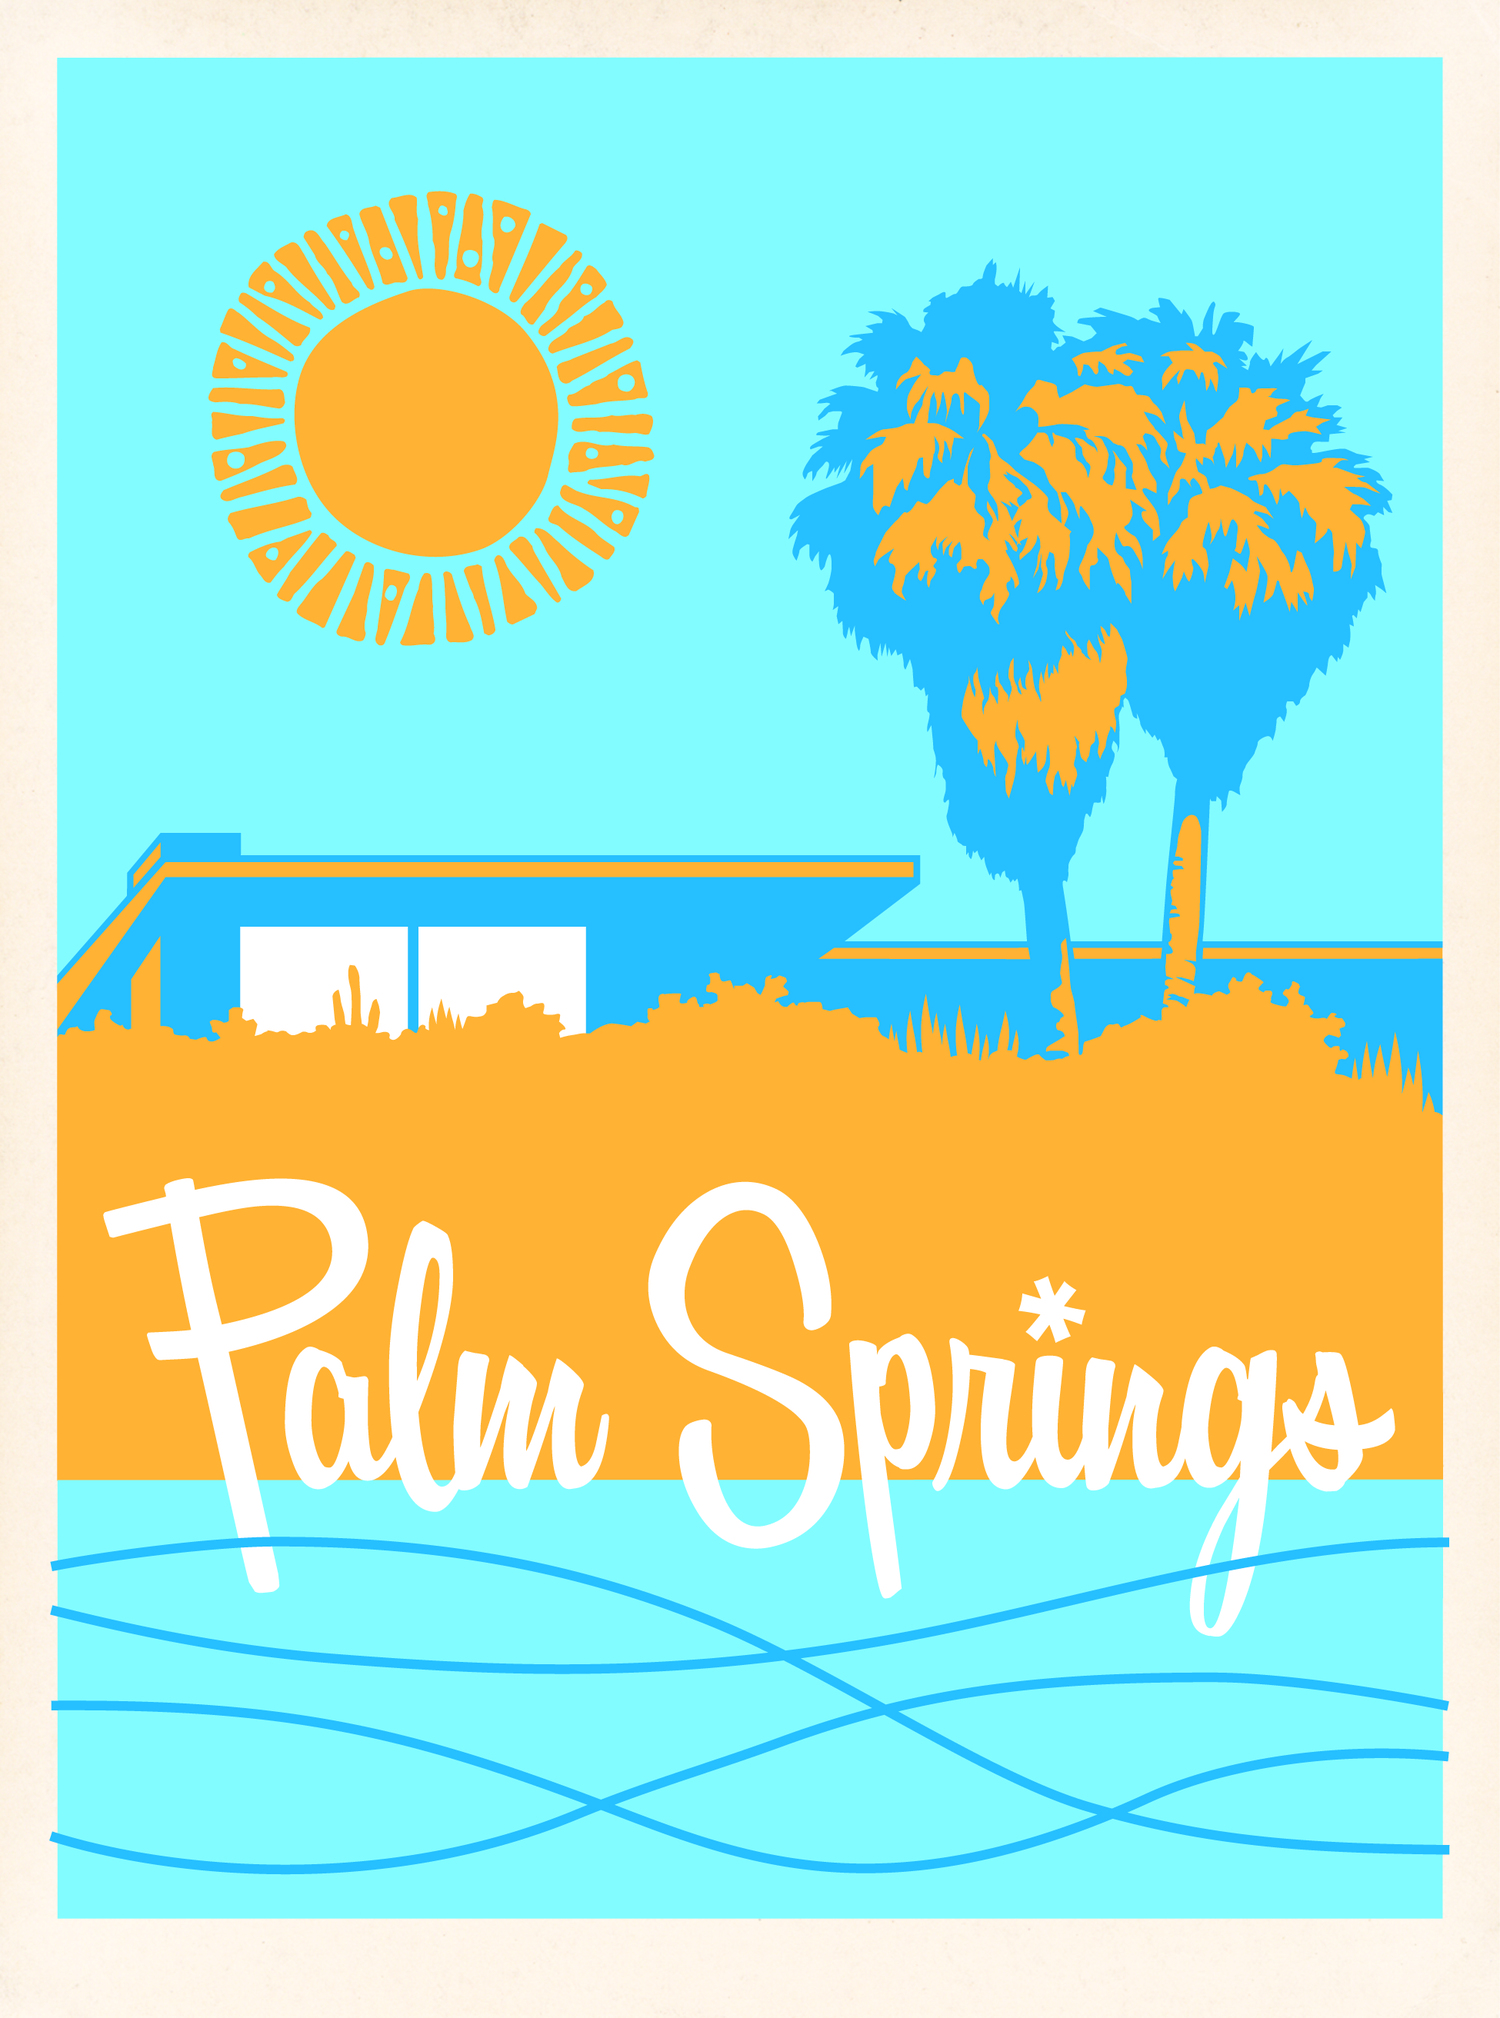 Palm Springs clipart #1, Download drawings